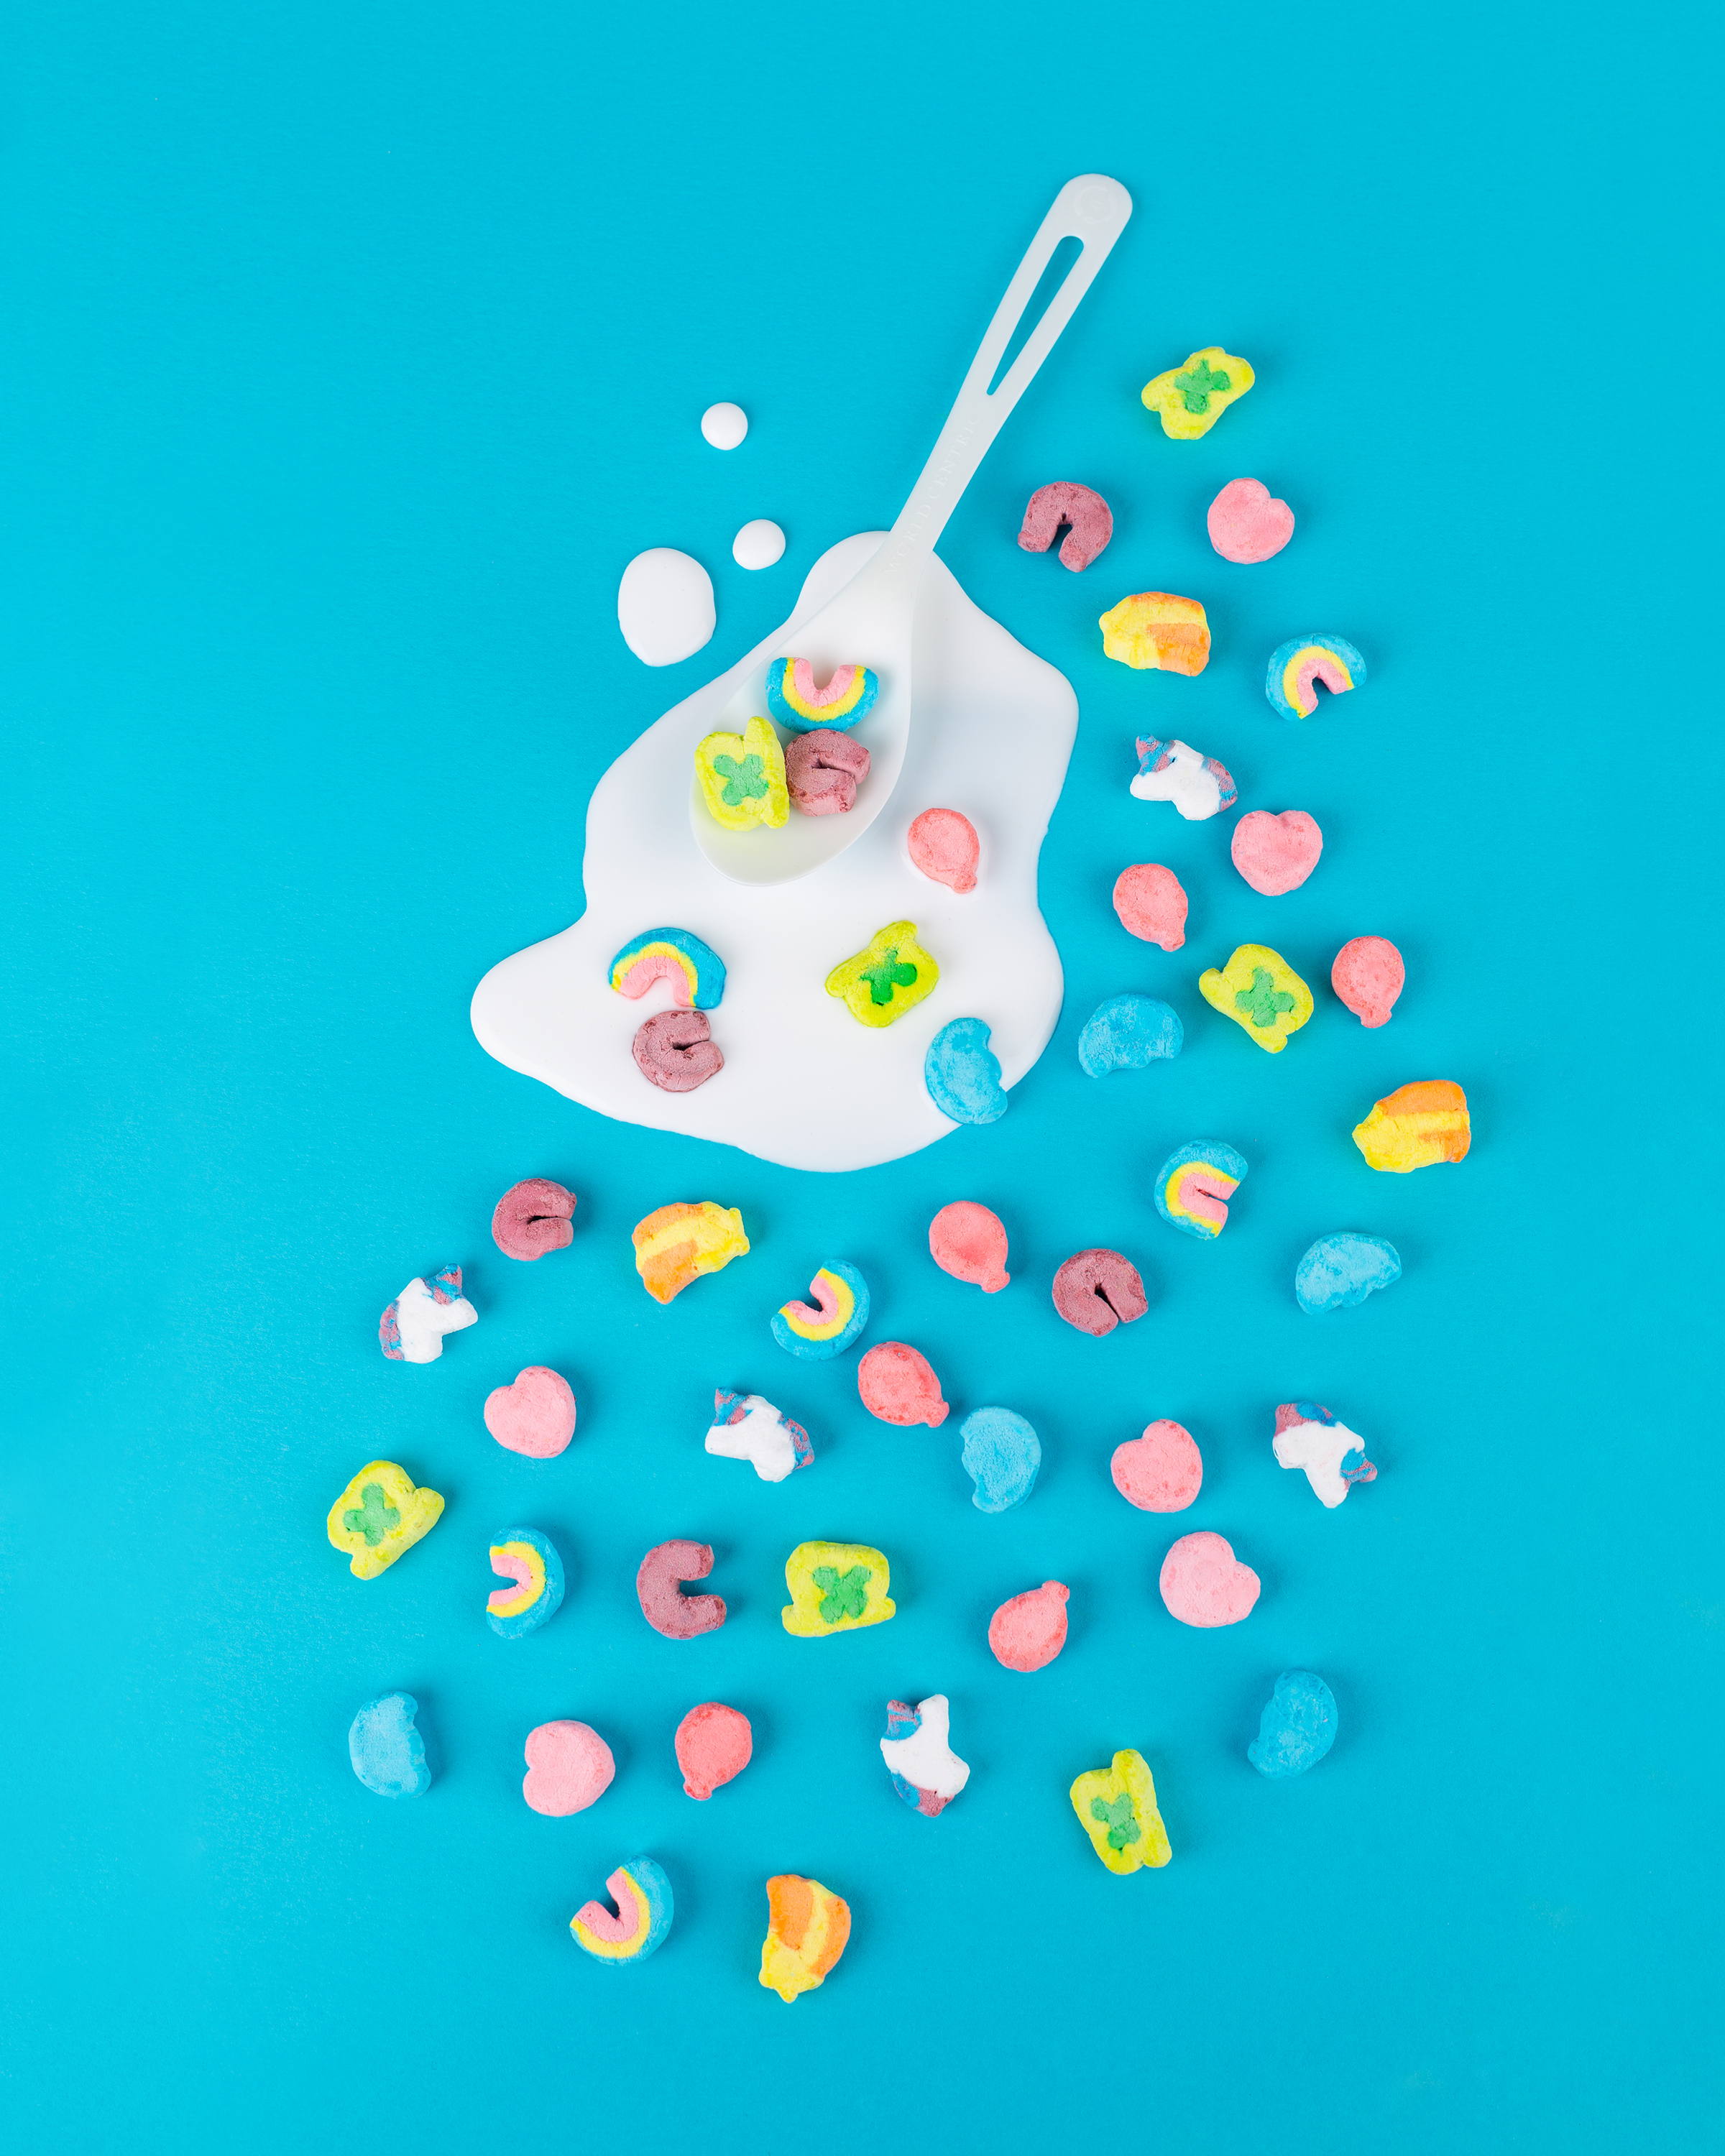 Kirsten Kaiser • Austin, TX   kirstenkaiserphotography.com  /  @kirstenkaiserphoto    My goal was to create a whimsical pattern play, using my favorite breakfast cereal of all time and to expand my studio skills by experimenting with creating the look of milk without using milk.